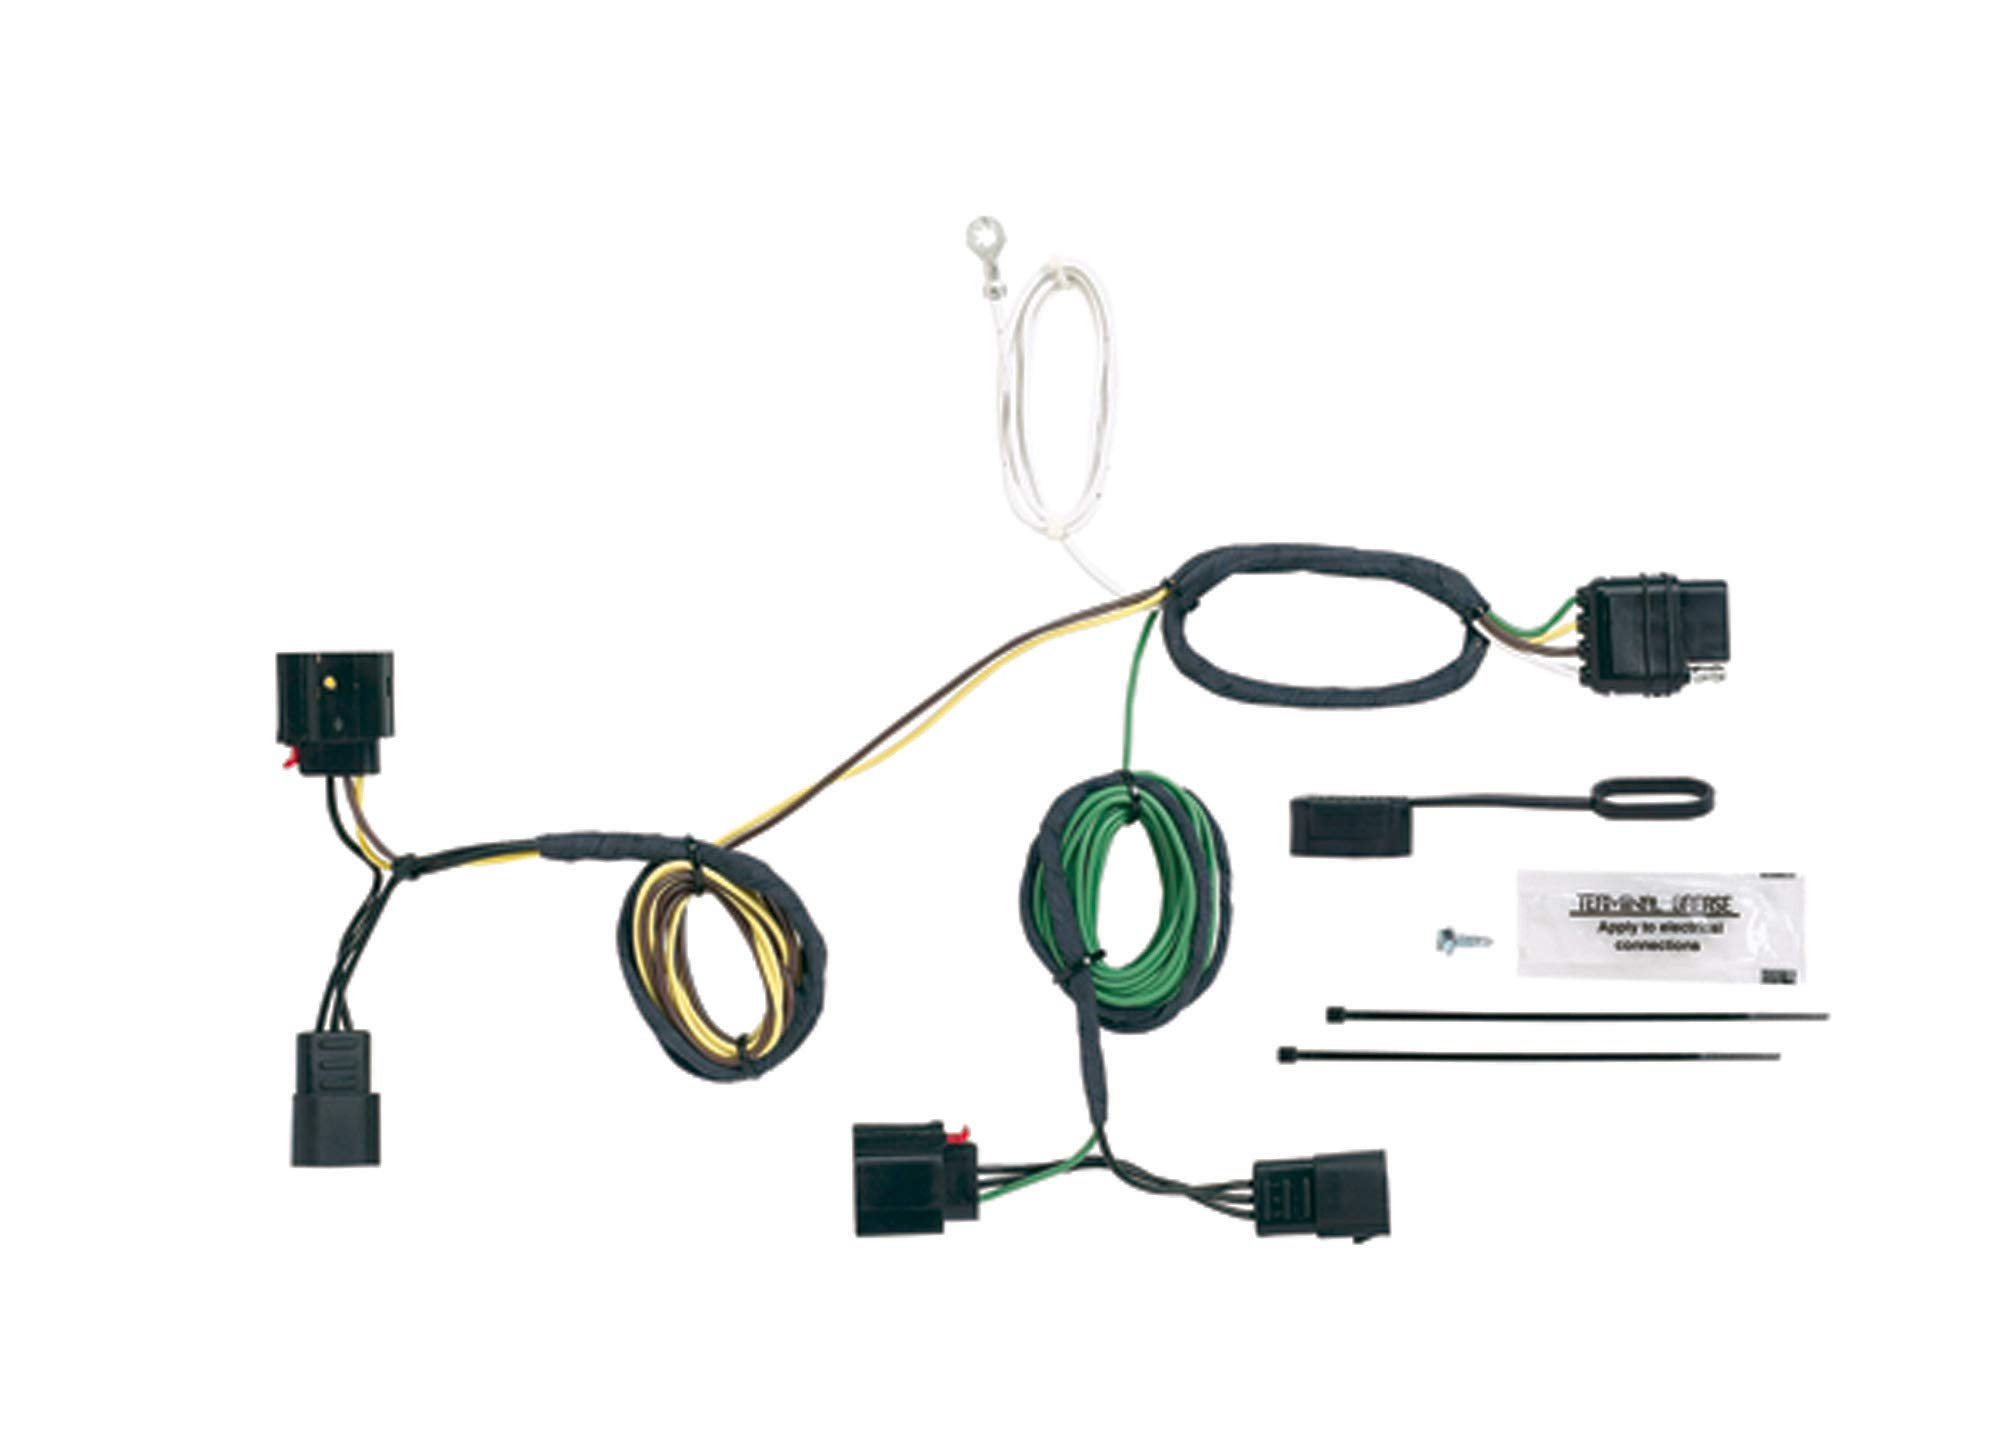 jeep cherokee trailer wiring harness accessory amazon comhopkins 42555 plug in simple vehicle to trailer wiring kit